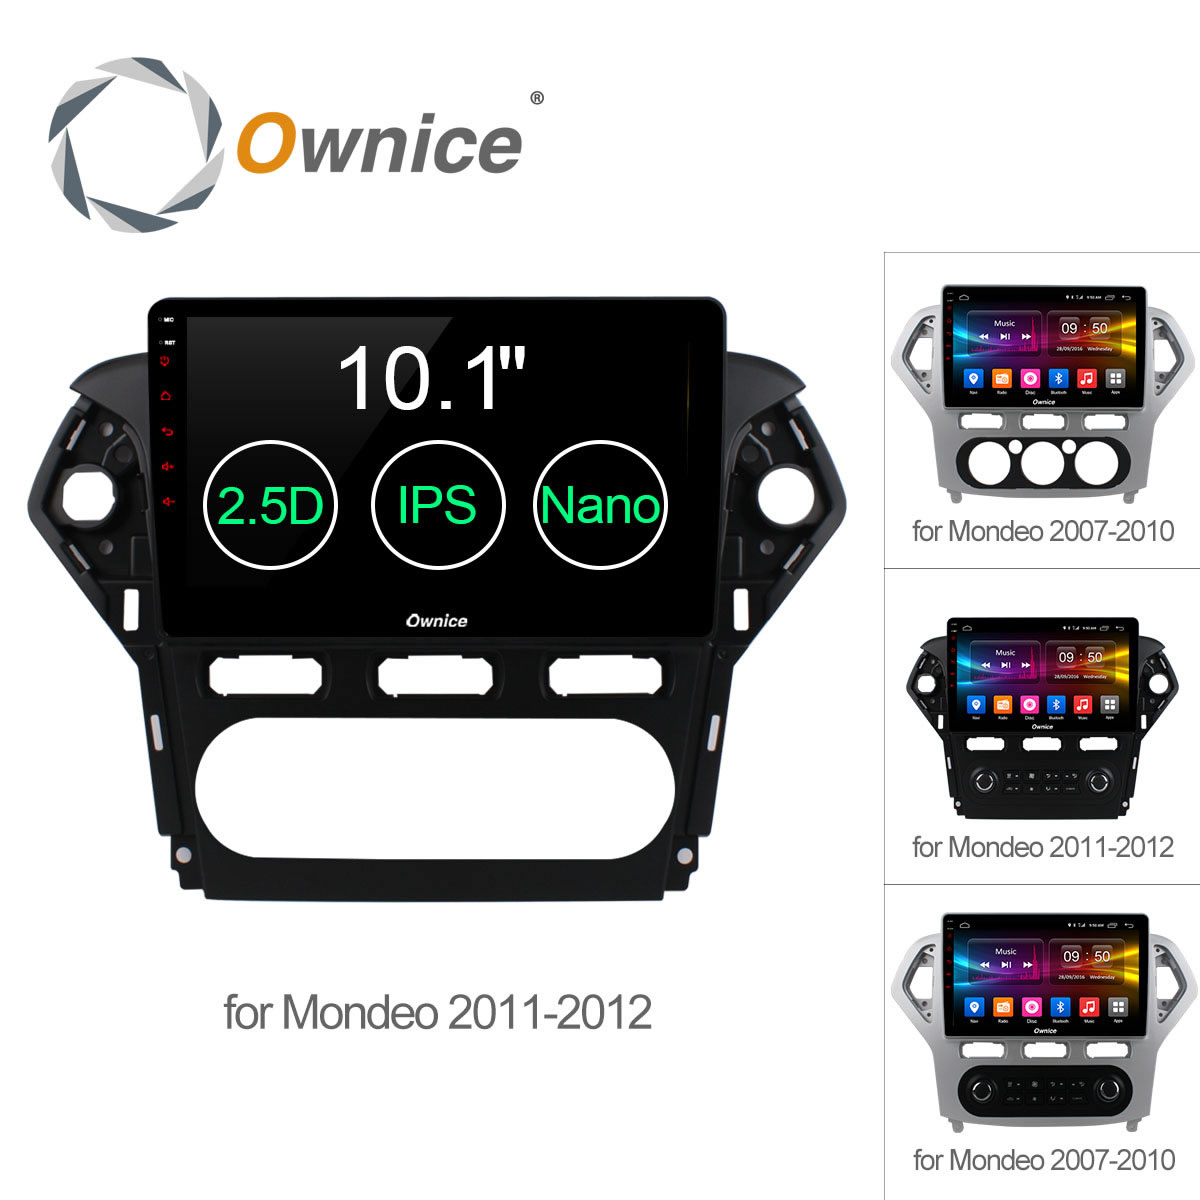 Ownice C500+ Android6.0 32G+2GB Car DVD Player GPS Navigation Radio 2.5D IPS For Ford Mondeo 2007 - 2012 Support 4G SIM DAB+ DVR special dvr without battery for ownice c500 car dvd and the dvd manufacture date must after 10th of april 2017 included 10th